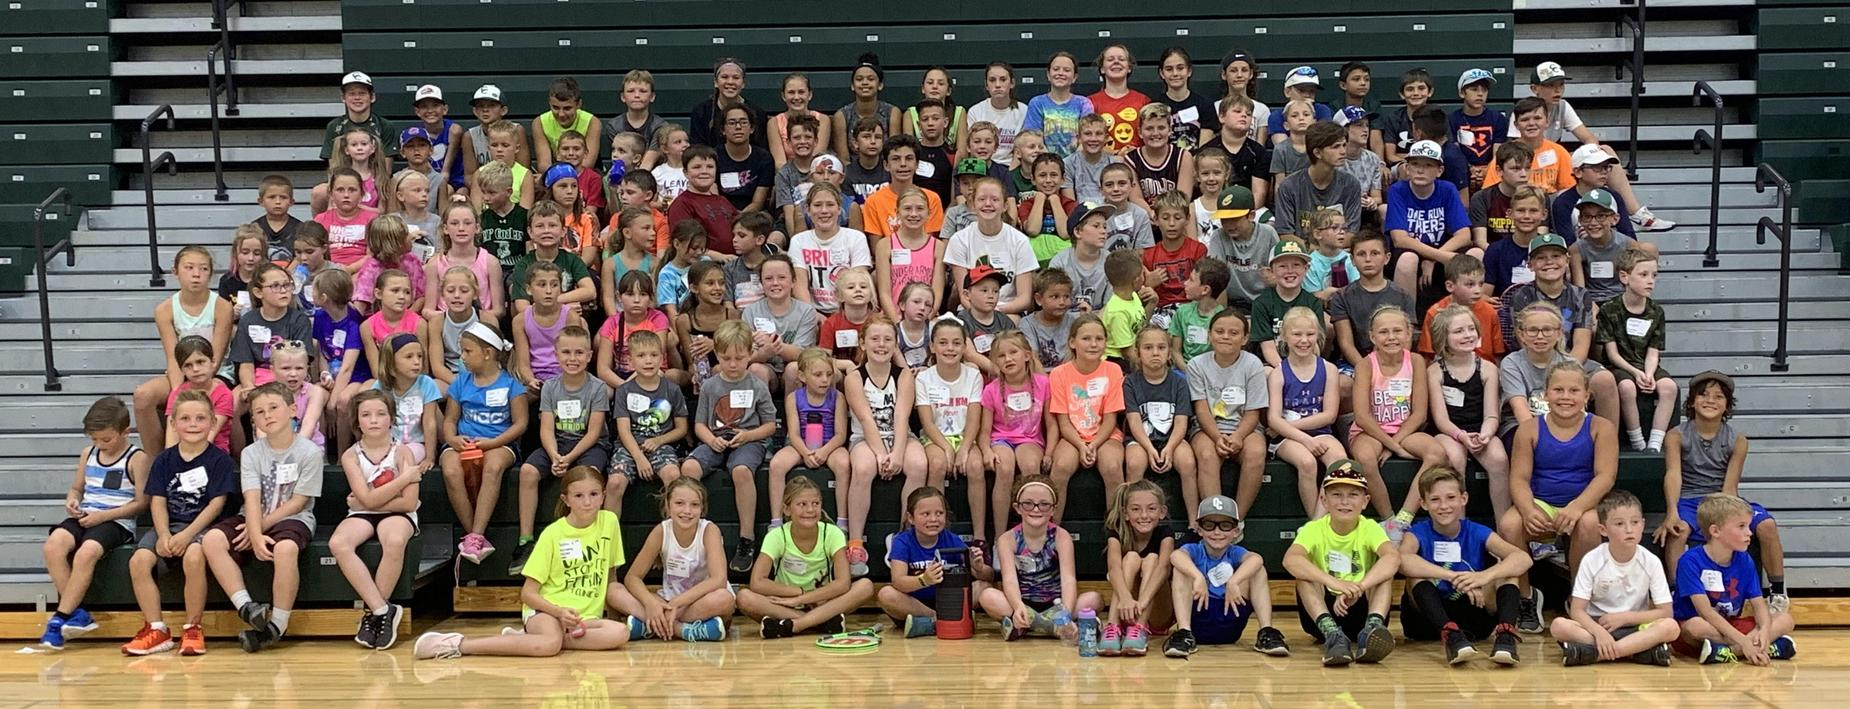 Summer Camp - Coalers with Character